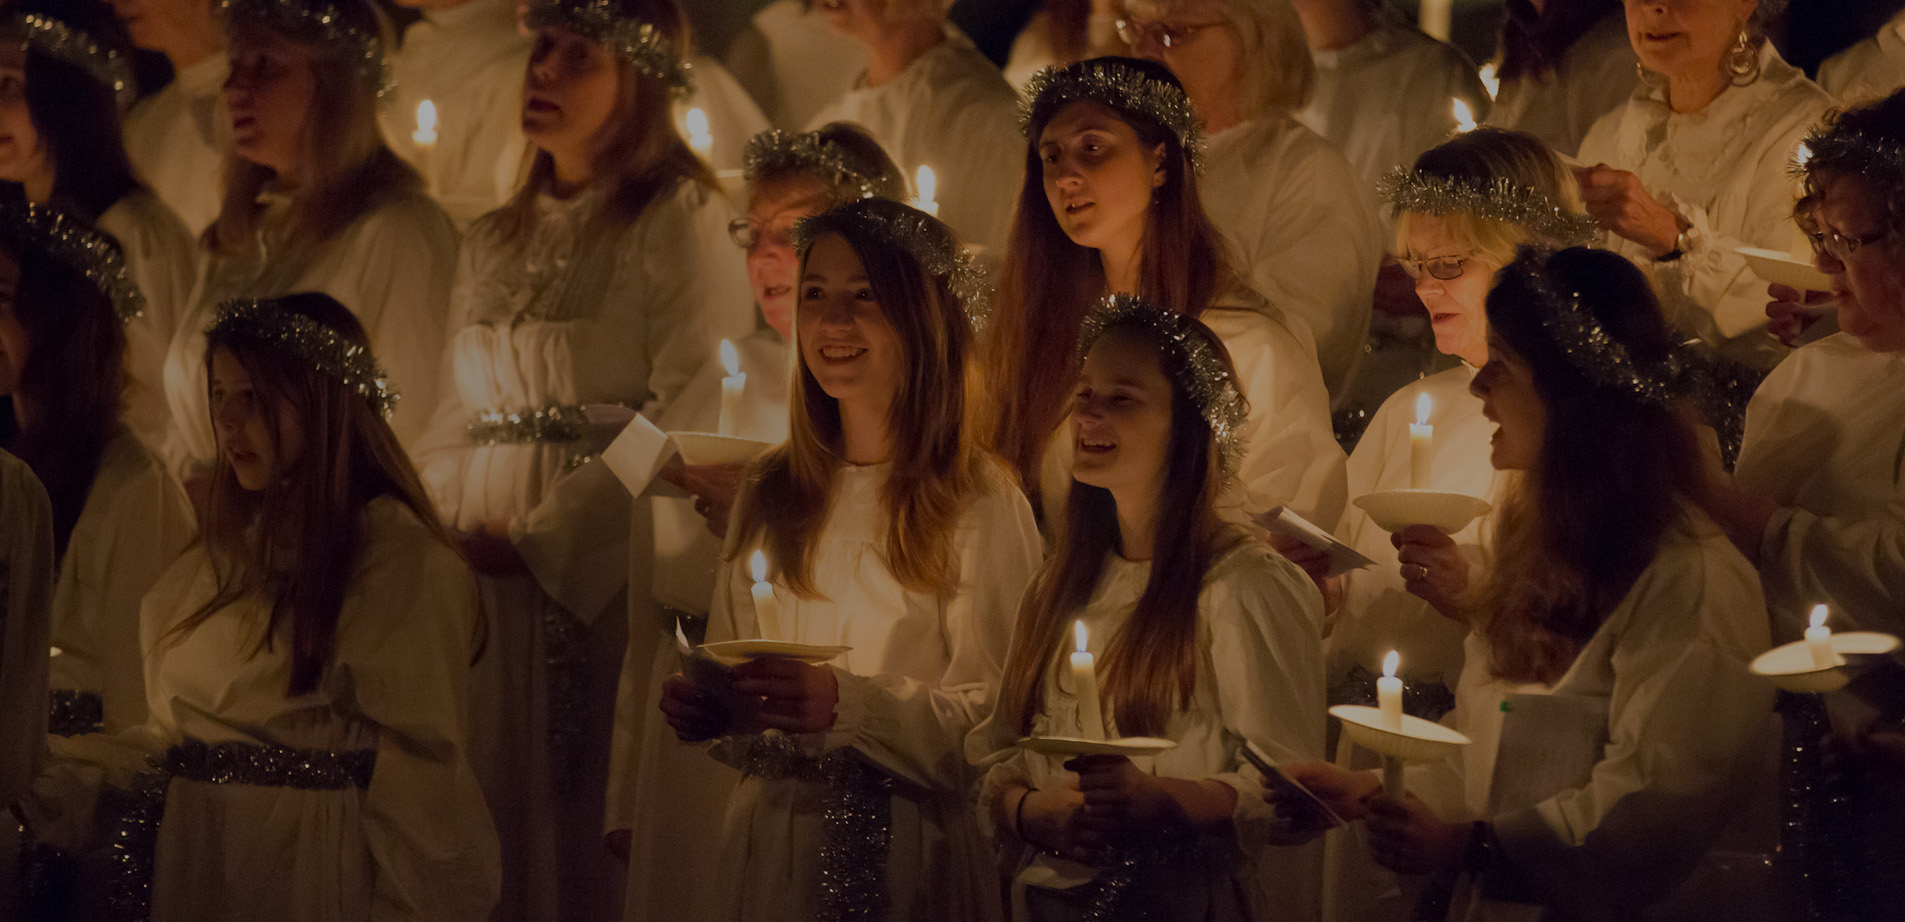 Sankta Lucia – Festival of Light